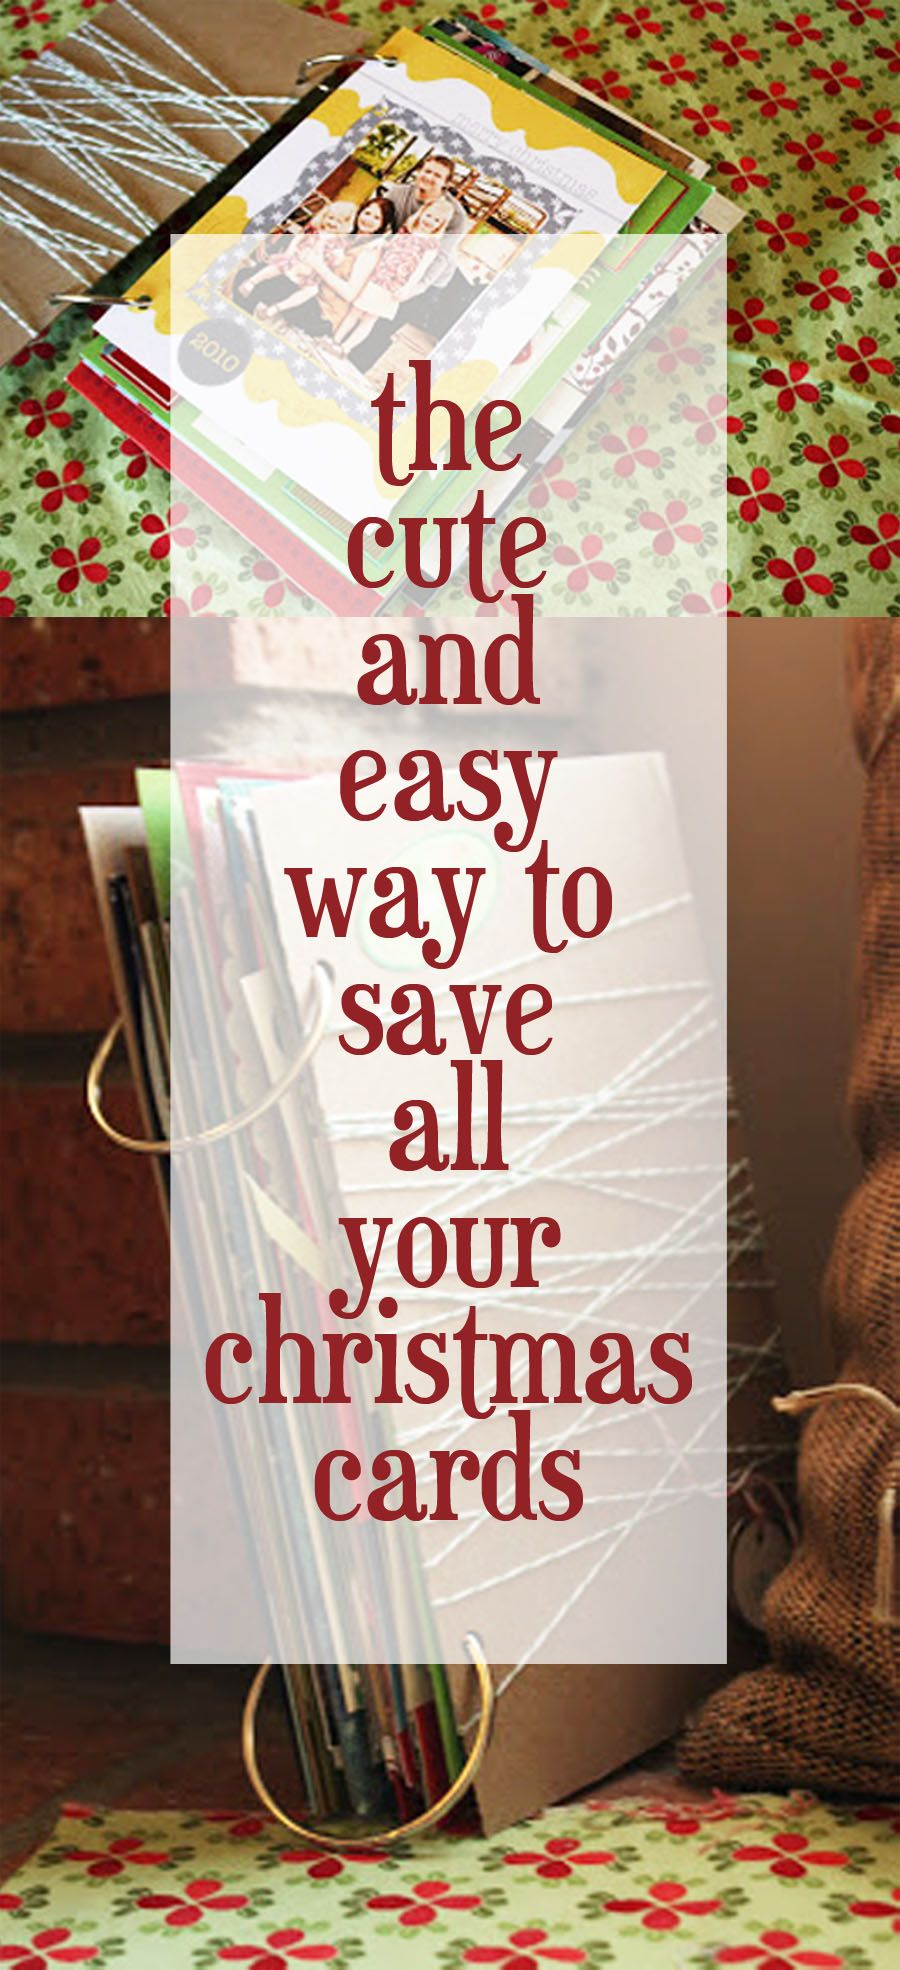 How to Save Your Christmas Cards - Honeybear Lane